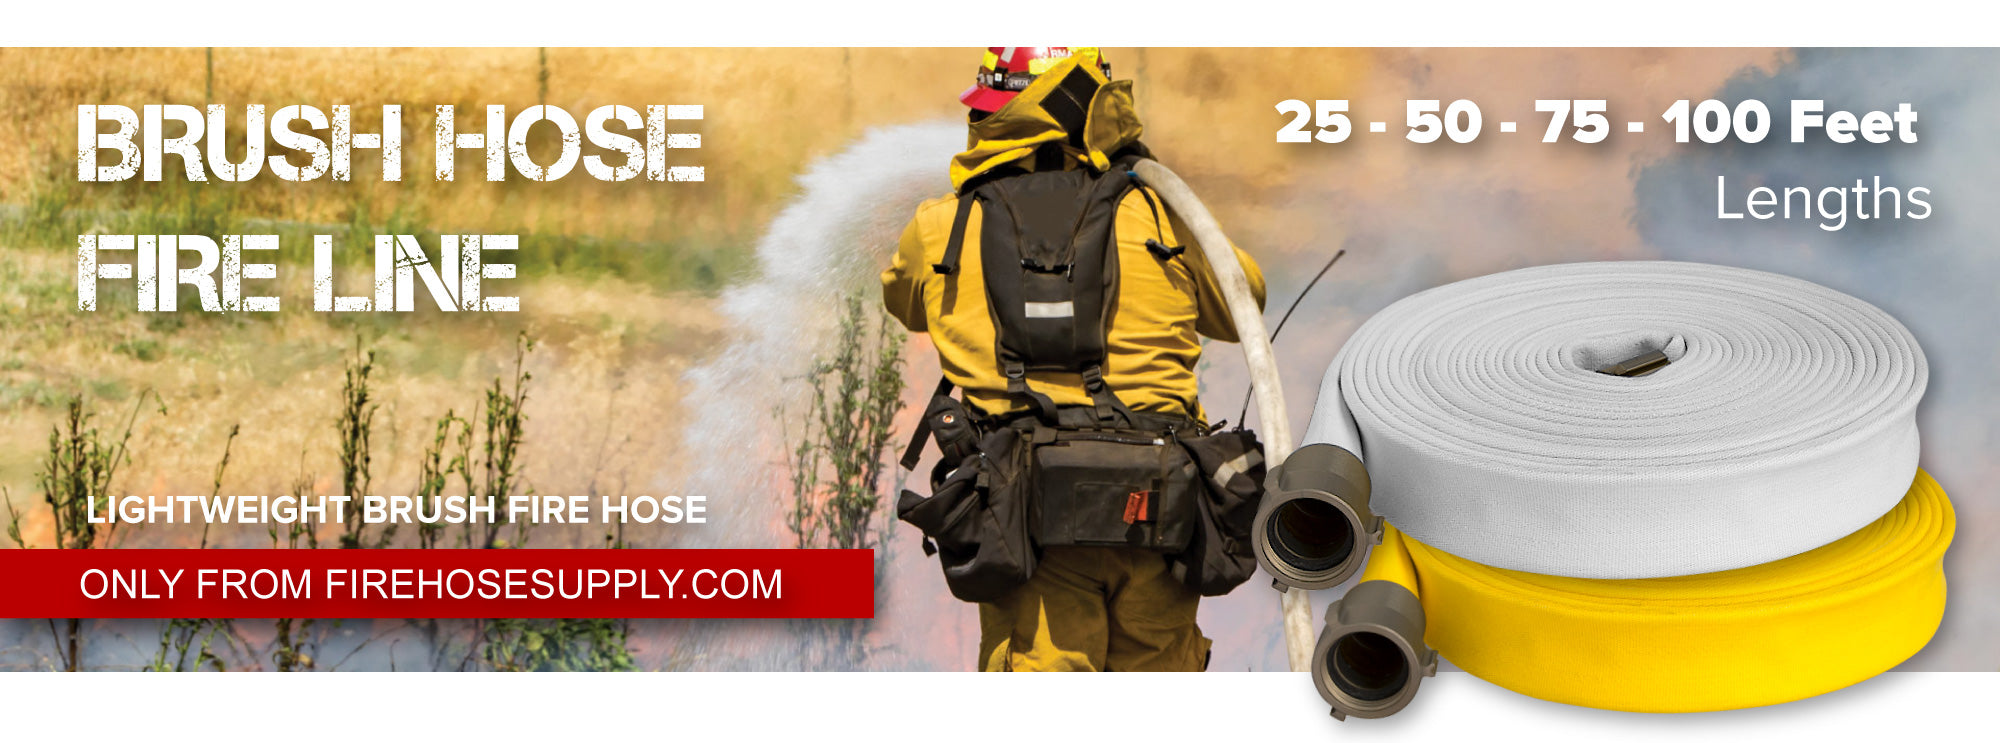 Brush Fire Hose